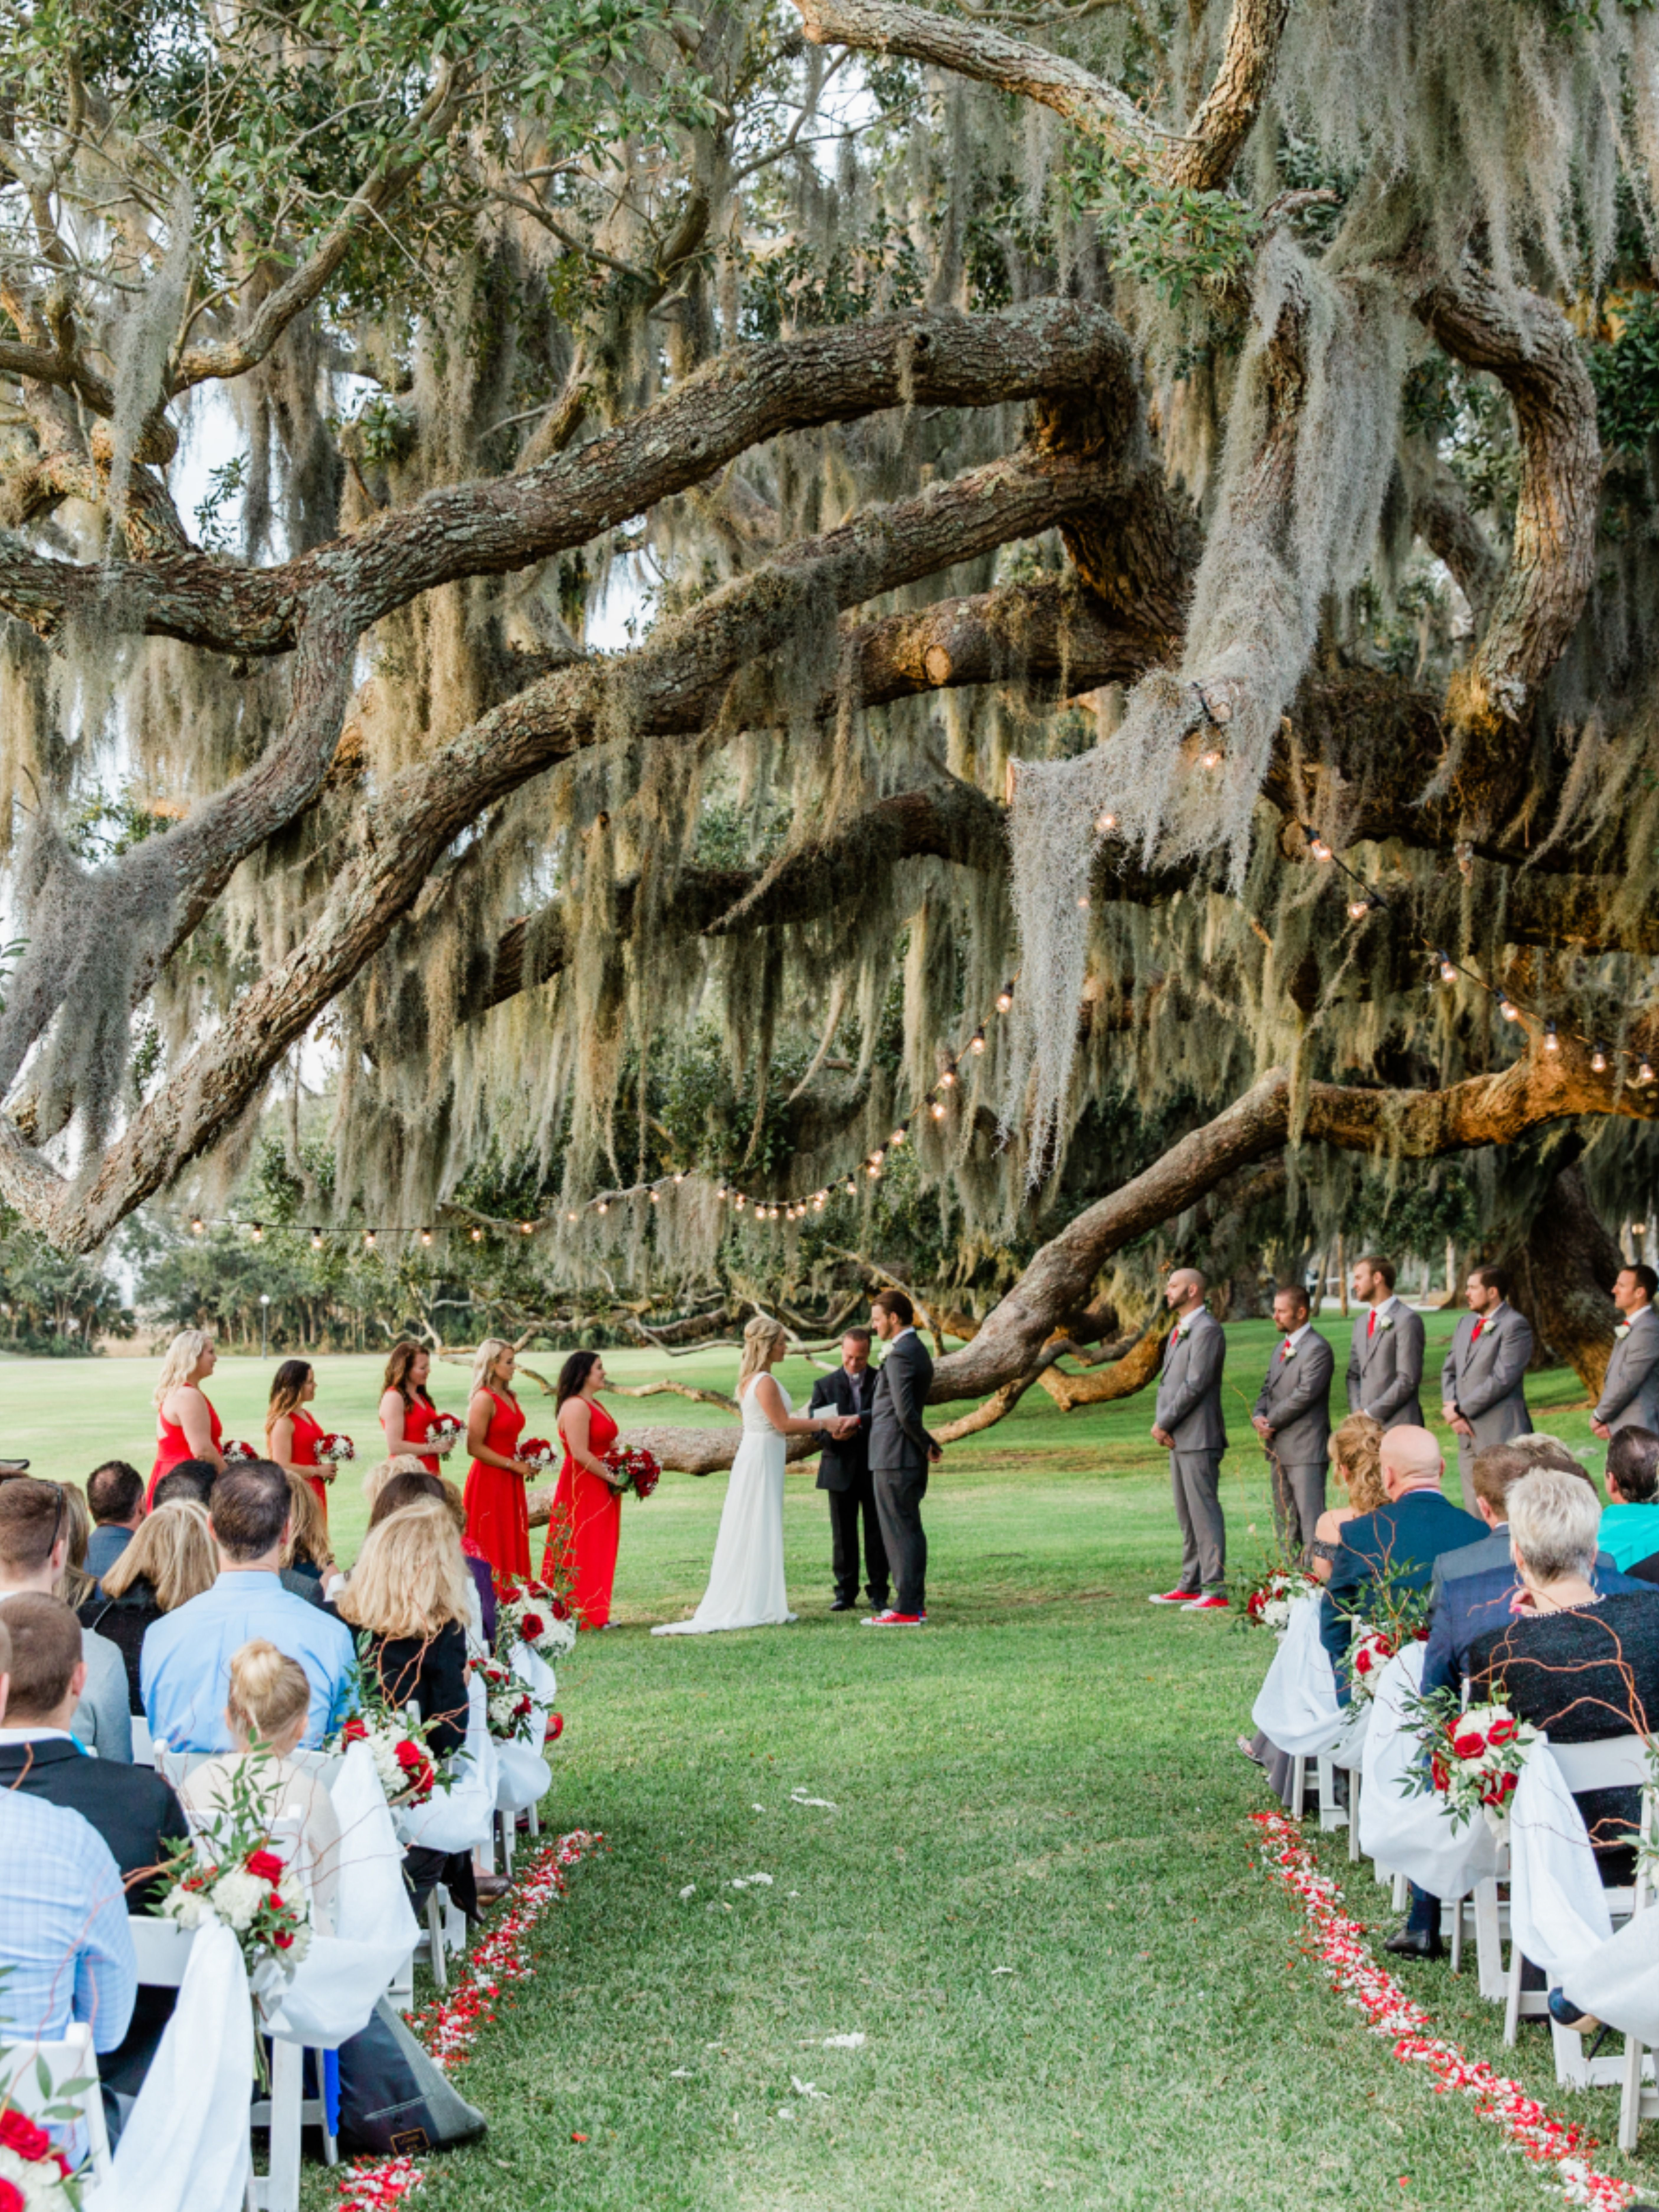 The Most Picturesque Southern Wedding Venue In 2020 Southern Wedding Venues Dream Destination Wedding Georgia Wedding